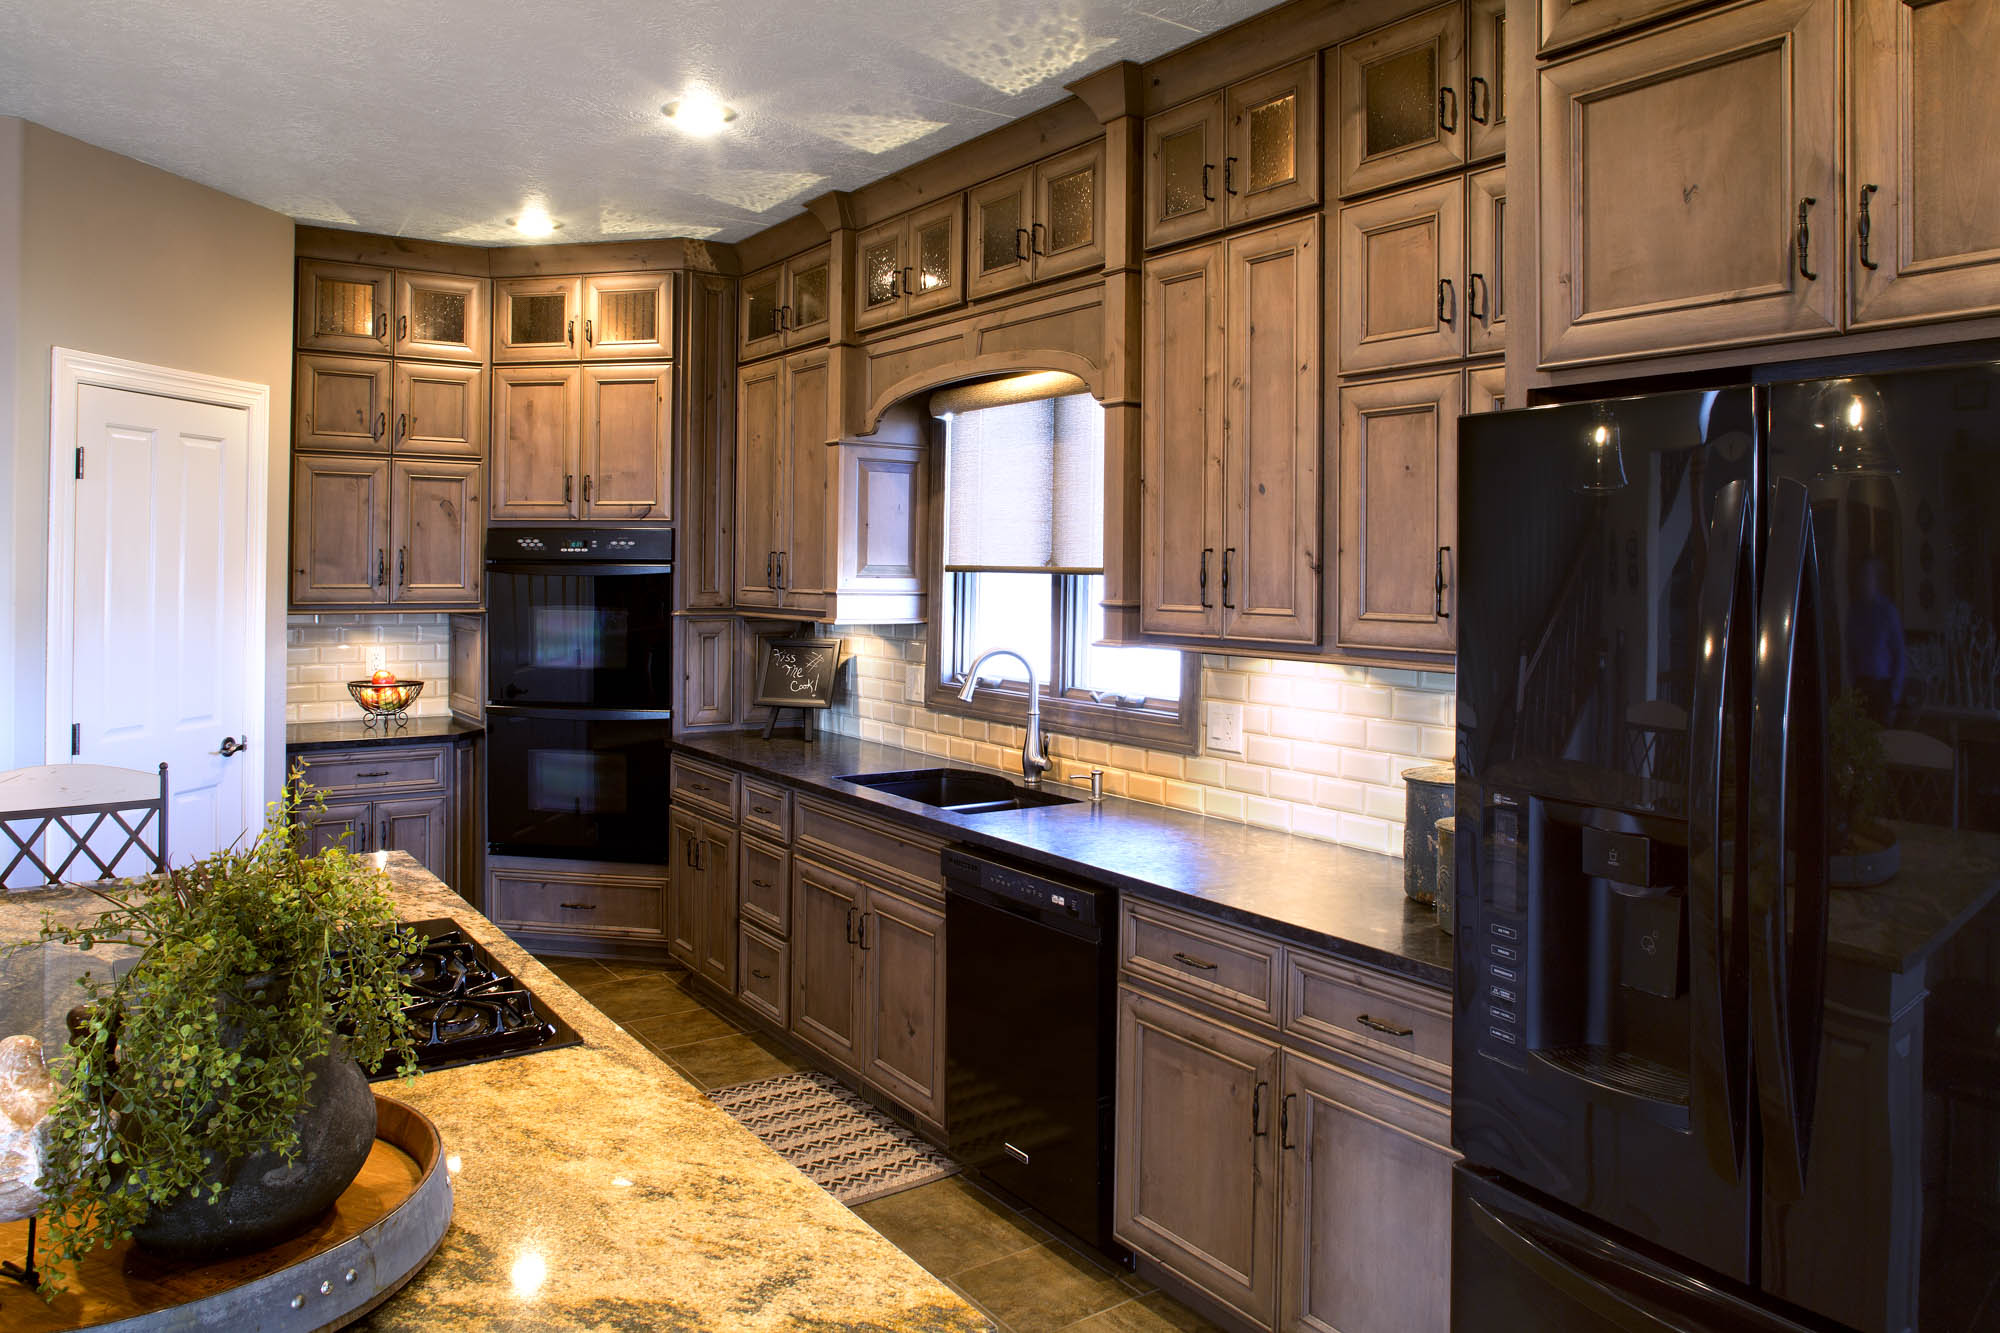 Renew | Stained kitchen cabinets in Rockport by Showplace Cabinetry - view 2